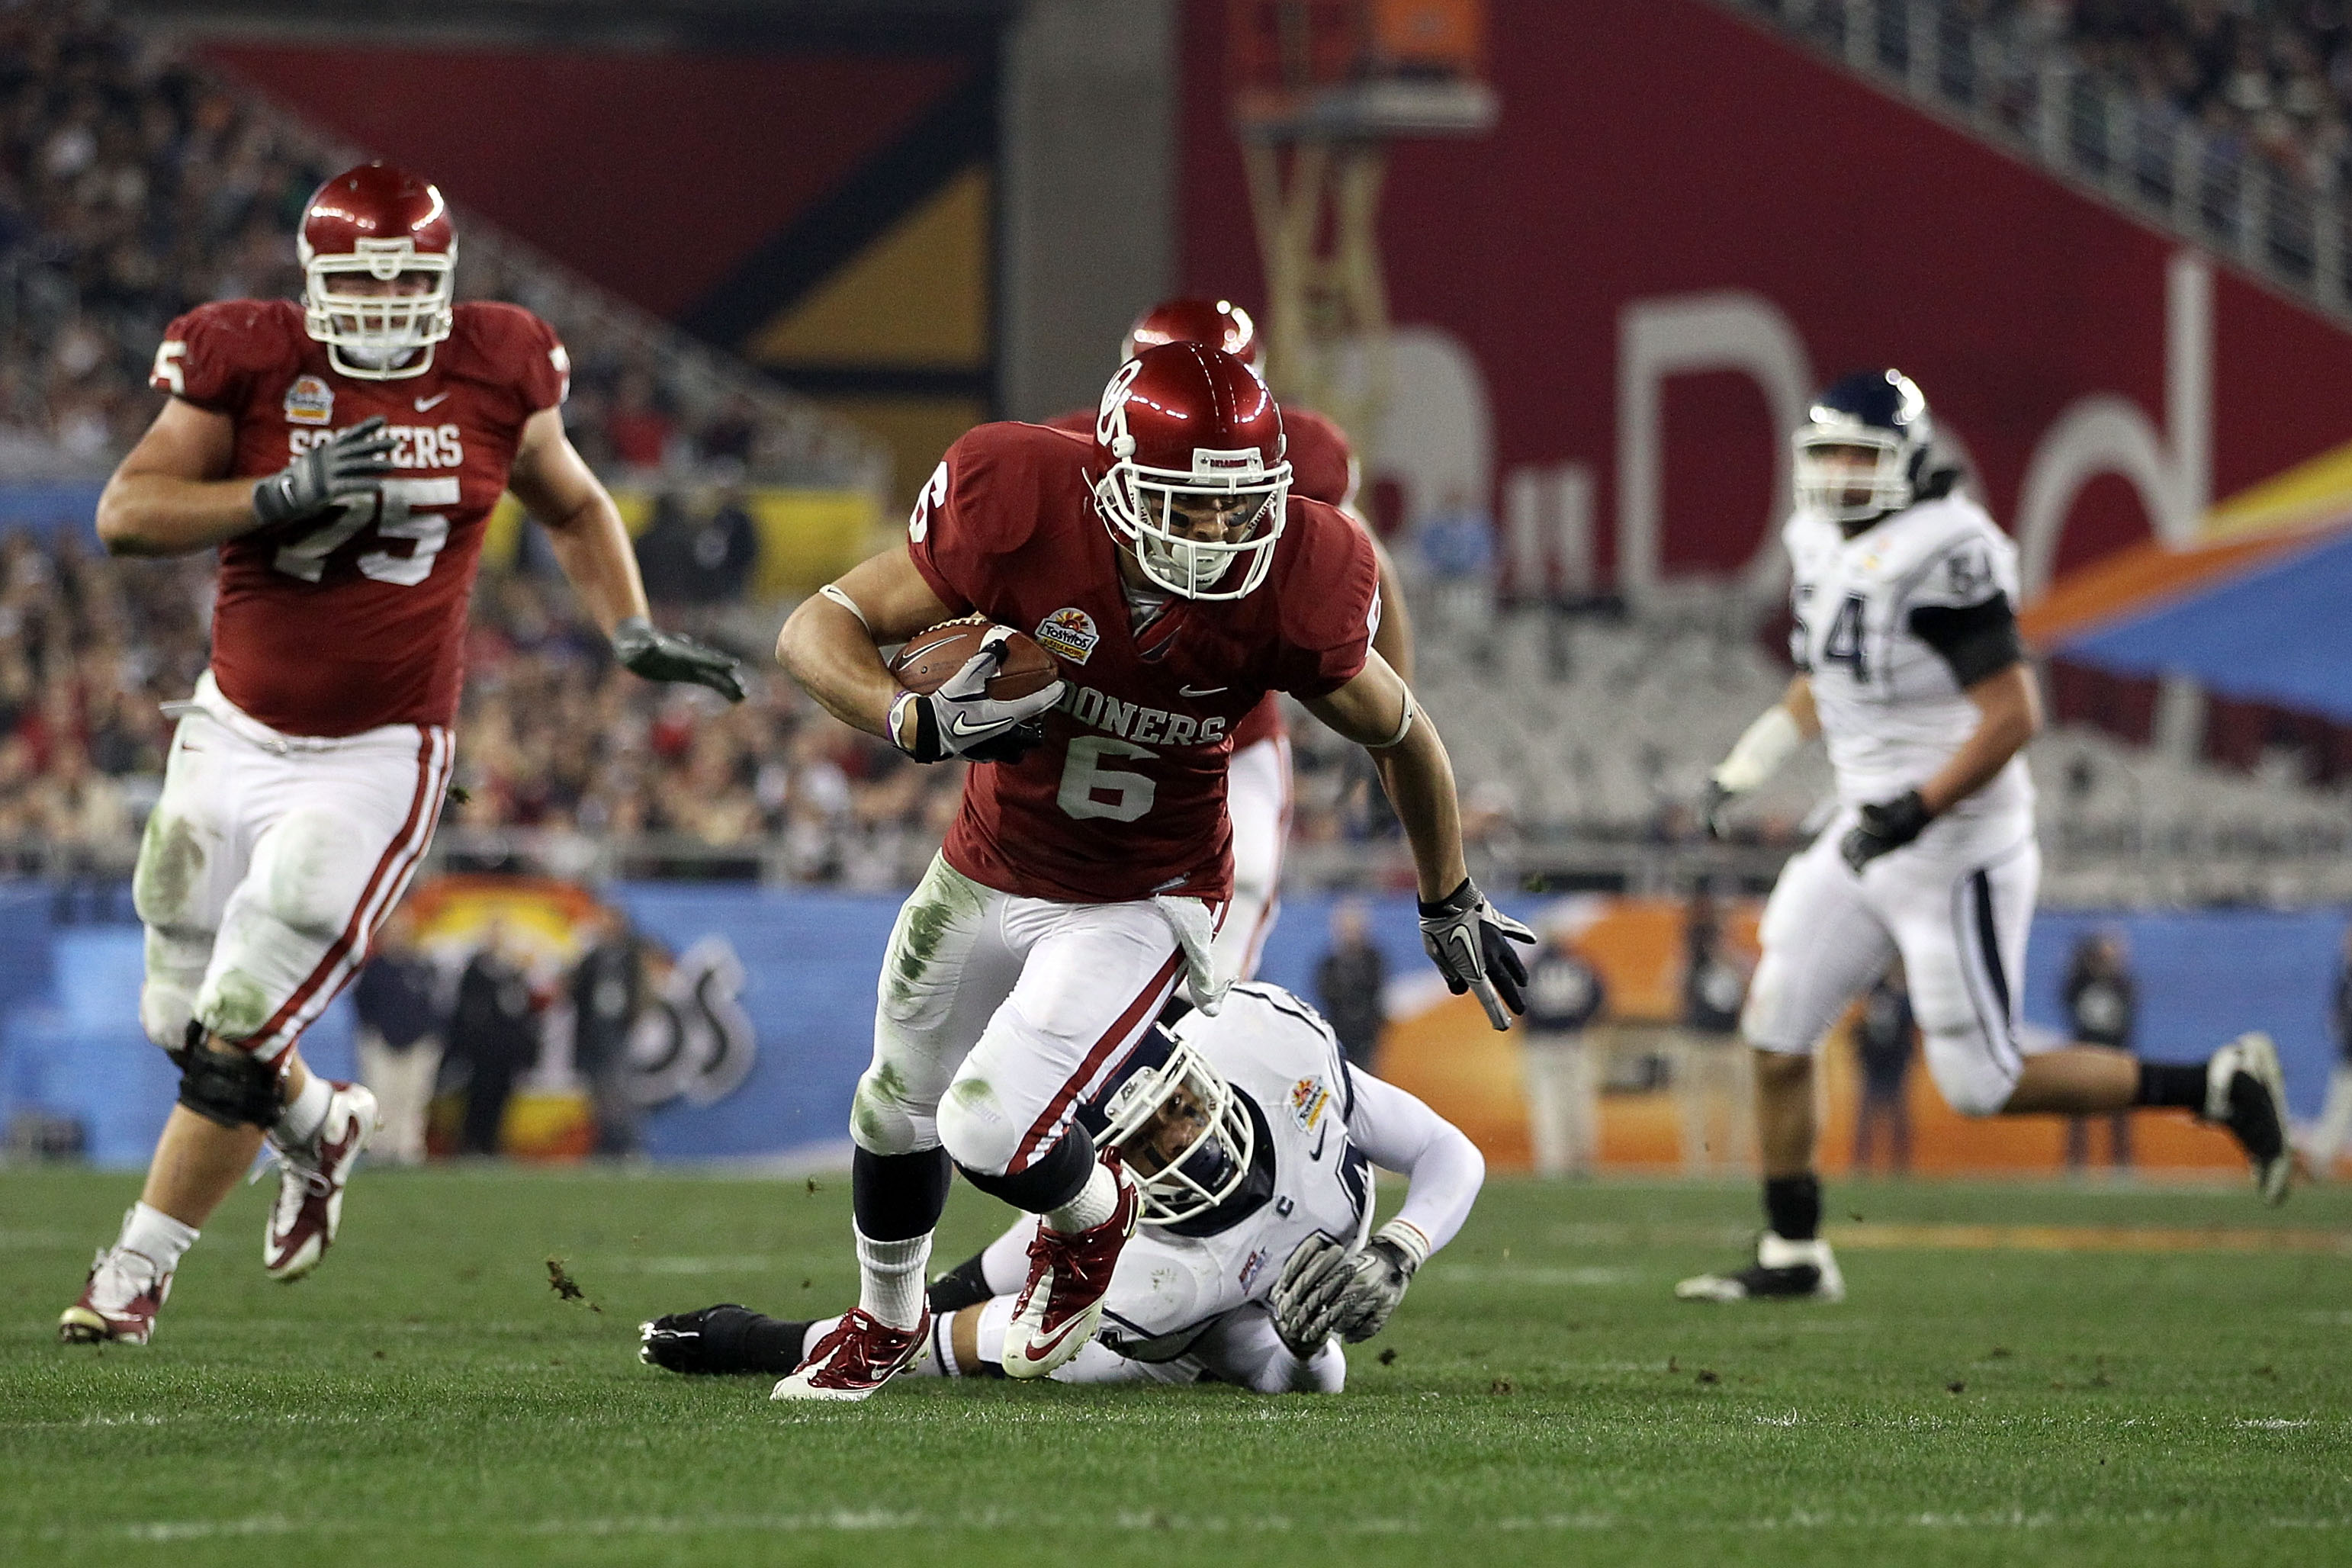 GLENDALE, AZ - JANUARY 01:  Cameron Kenney #6 of the Oklahoma Sooners runs after a catch against the Connecticut Huskies during the Tostitos Fiesta Bowl at the Universtity of Phoenix Stadium on January 1, 2011 in Glendale, Arizona.  (Photo by Christian Pe